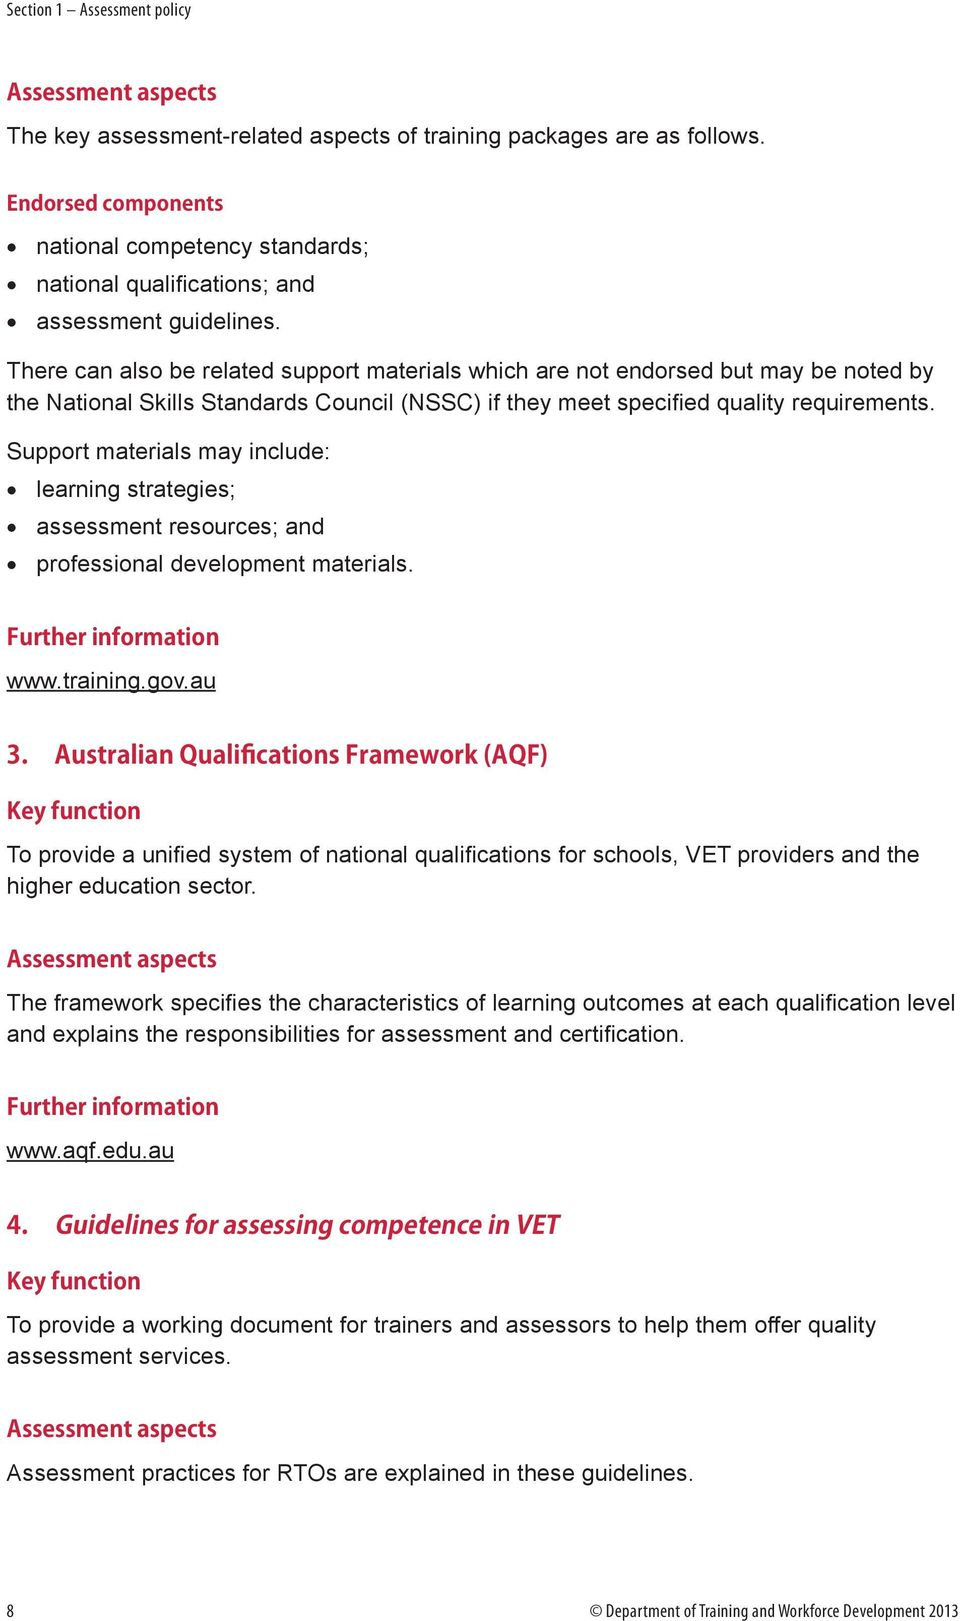 There can also be related support materials which are not endorsed but may be noted by the National Skills Standards Council (NSSC) if they meet specified quality requirements.